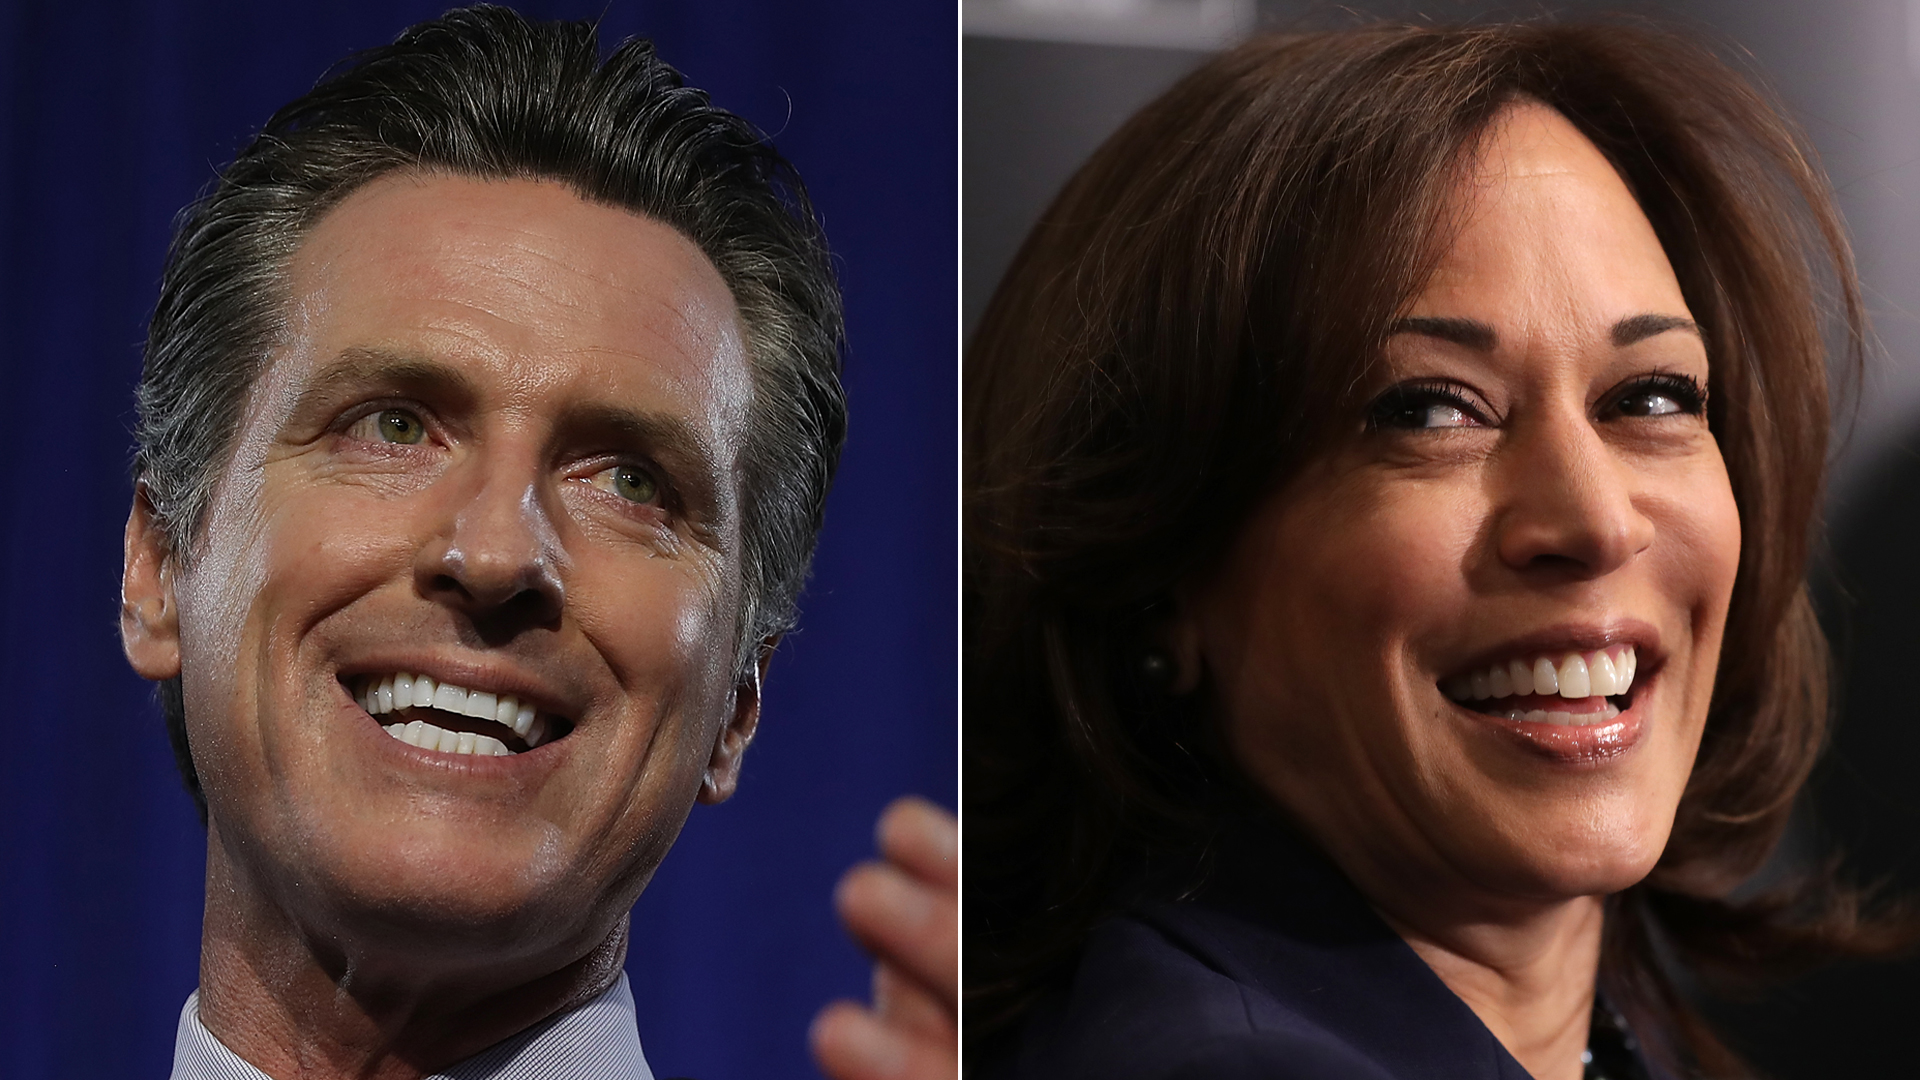 From left: Gavin Newsom speaks during his primary election night gathering in San Francisco on June 5, 2018, and Sen. Kamala Harris participates in an event with leaders from historically black colleges and universities at the JW Marriott in Washington, D.C., on Feb. 7, 2019. (Credit: Justin Sullivan / Chip Somodevilla / Getty Images)